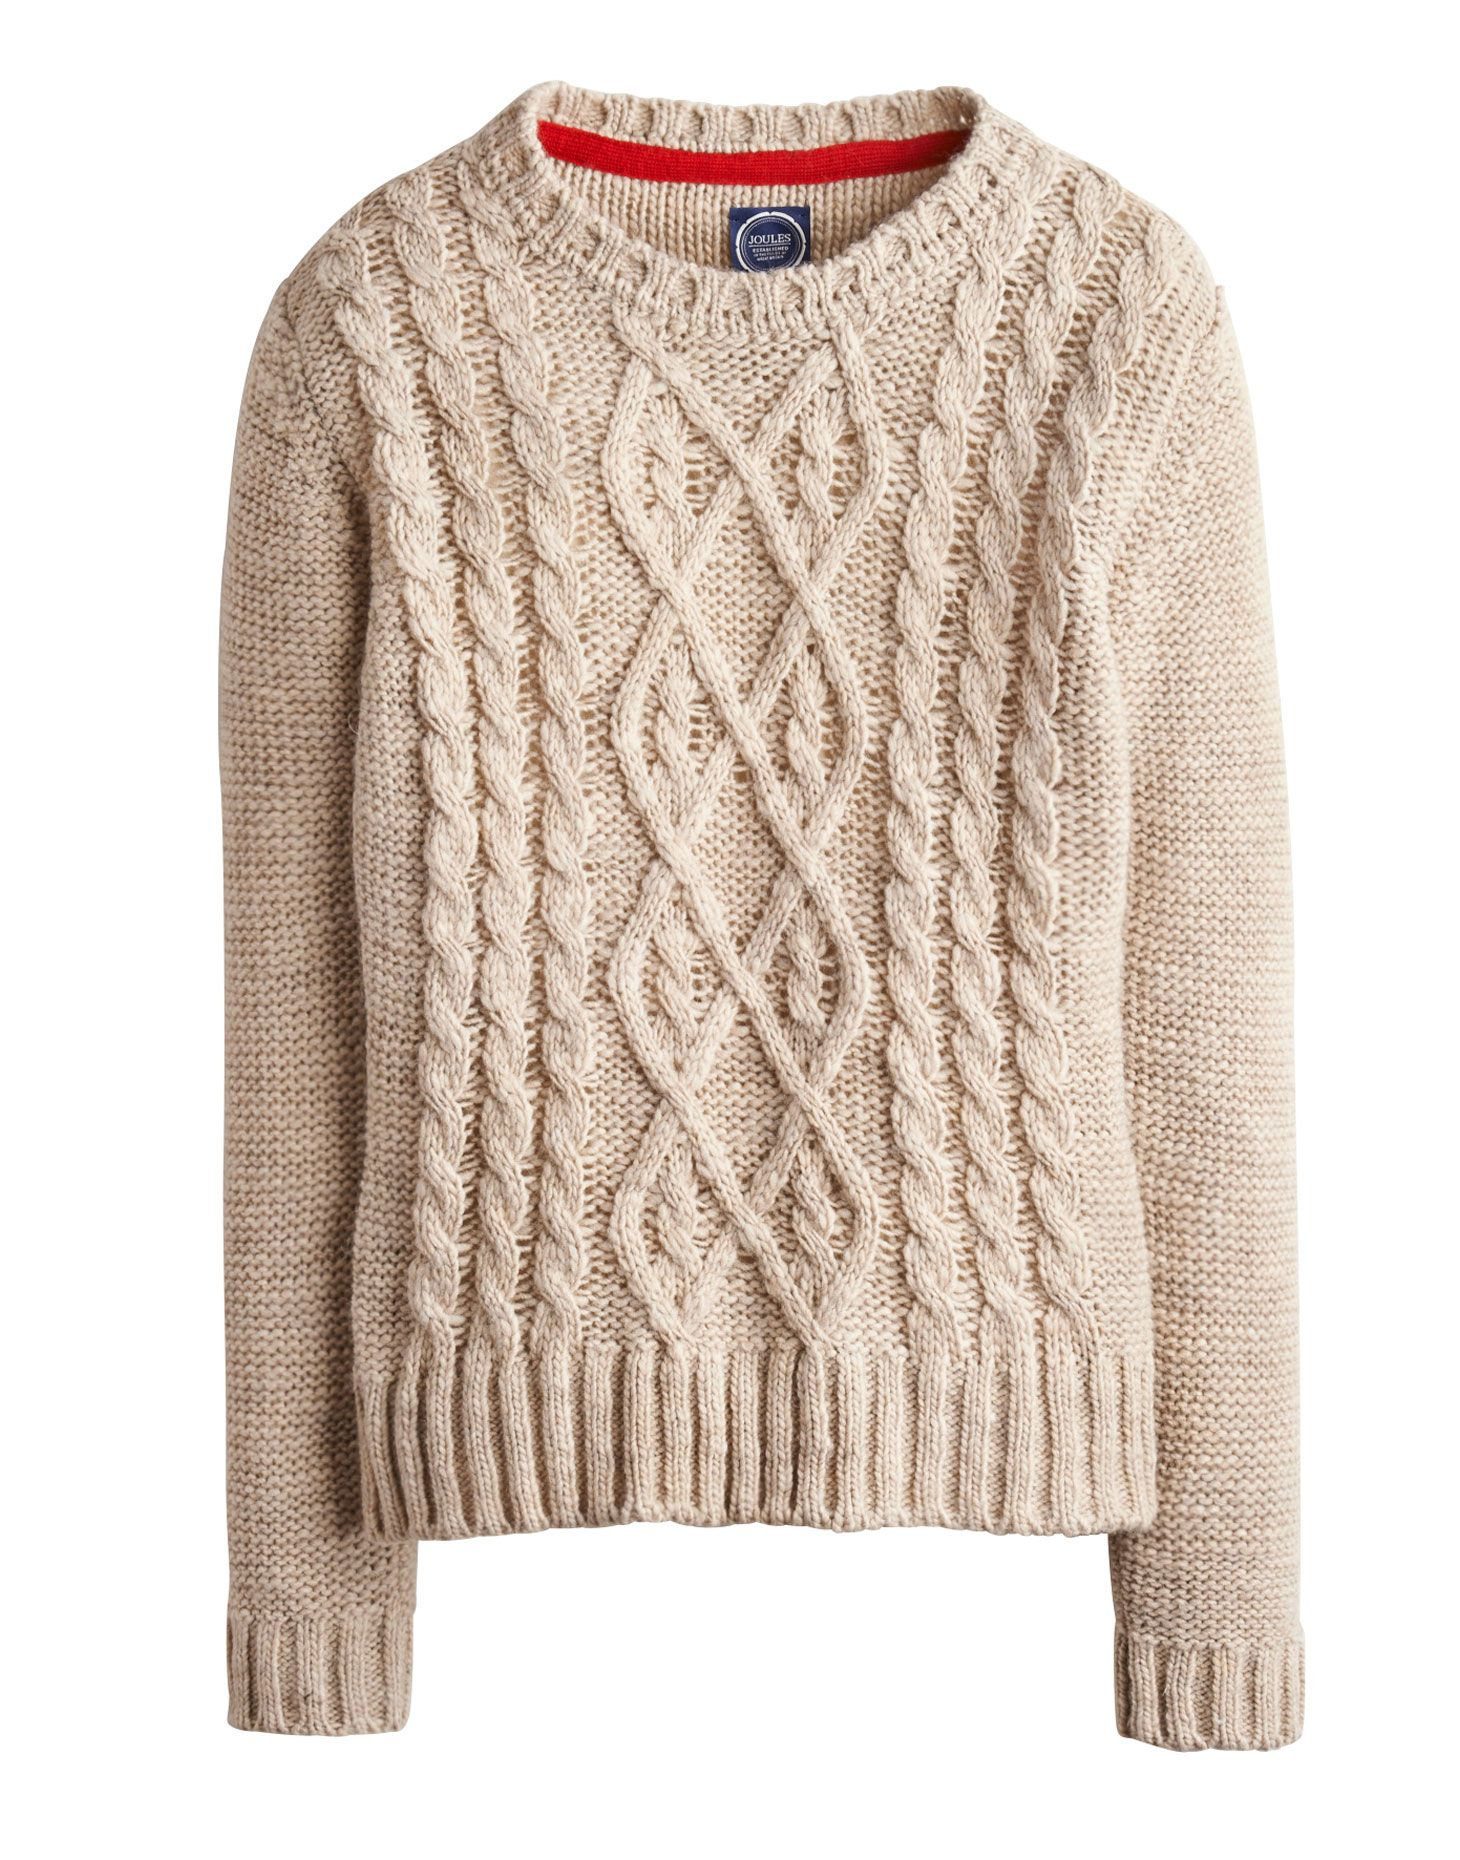 mens cable knit jumper - Google Search   Cable   Pinterest   Cable ...